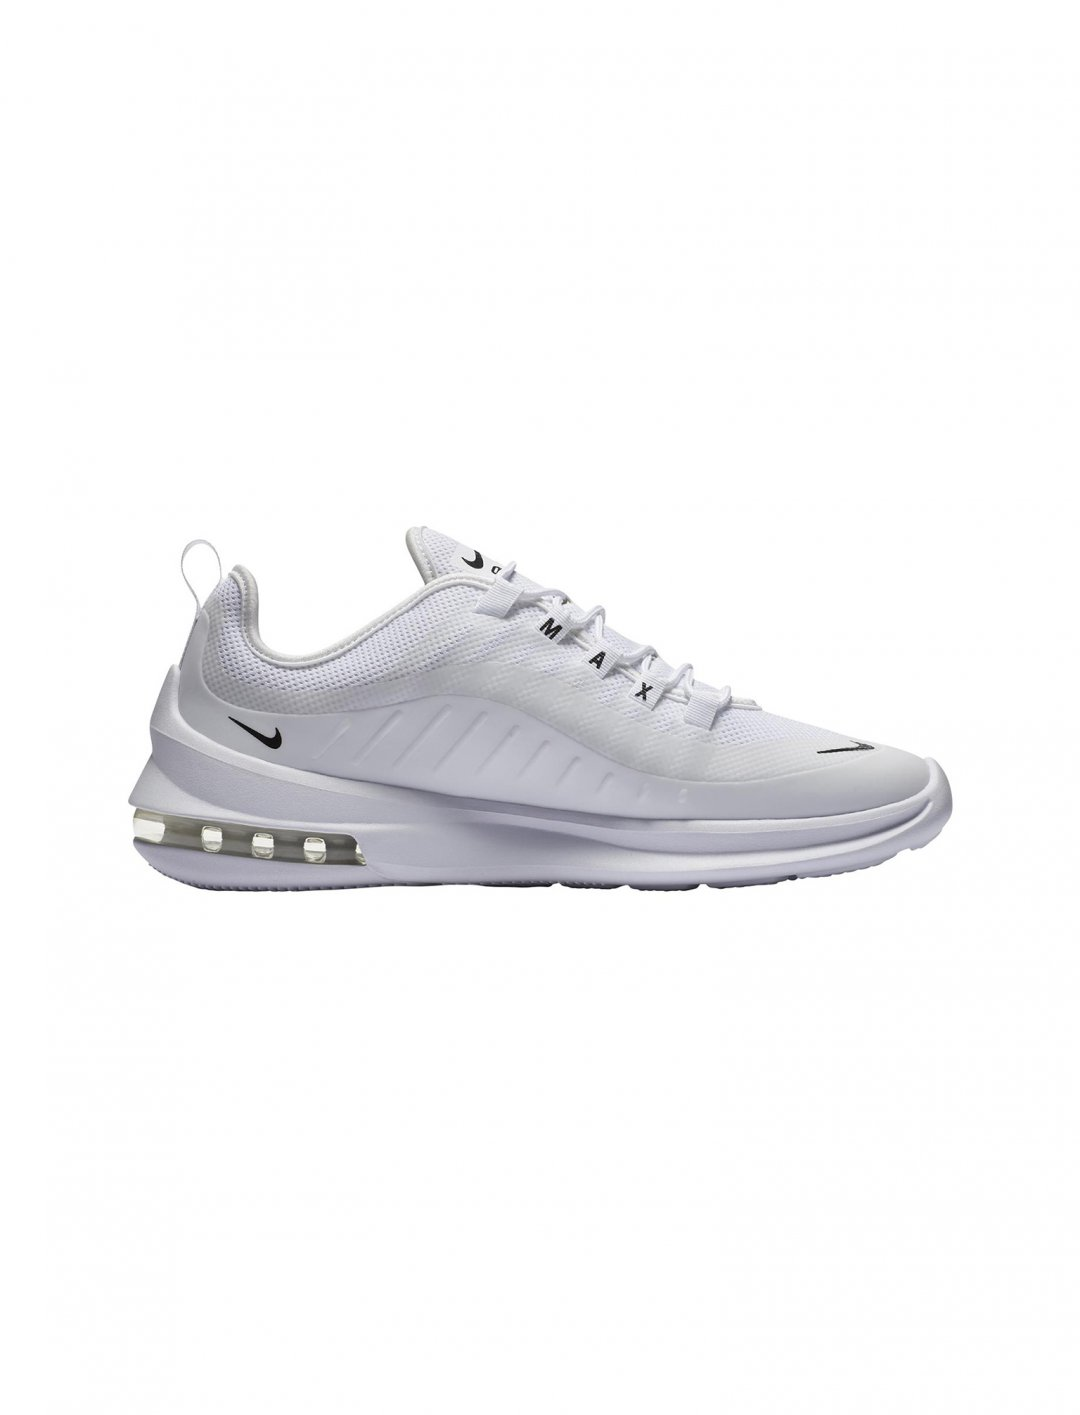 "Nike Air Max Axis Trainers {""id"":12,""product_section_id"":1,""name"":""Shoes"",""order"":12} Nike"